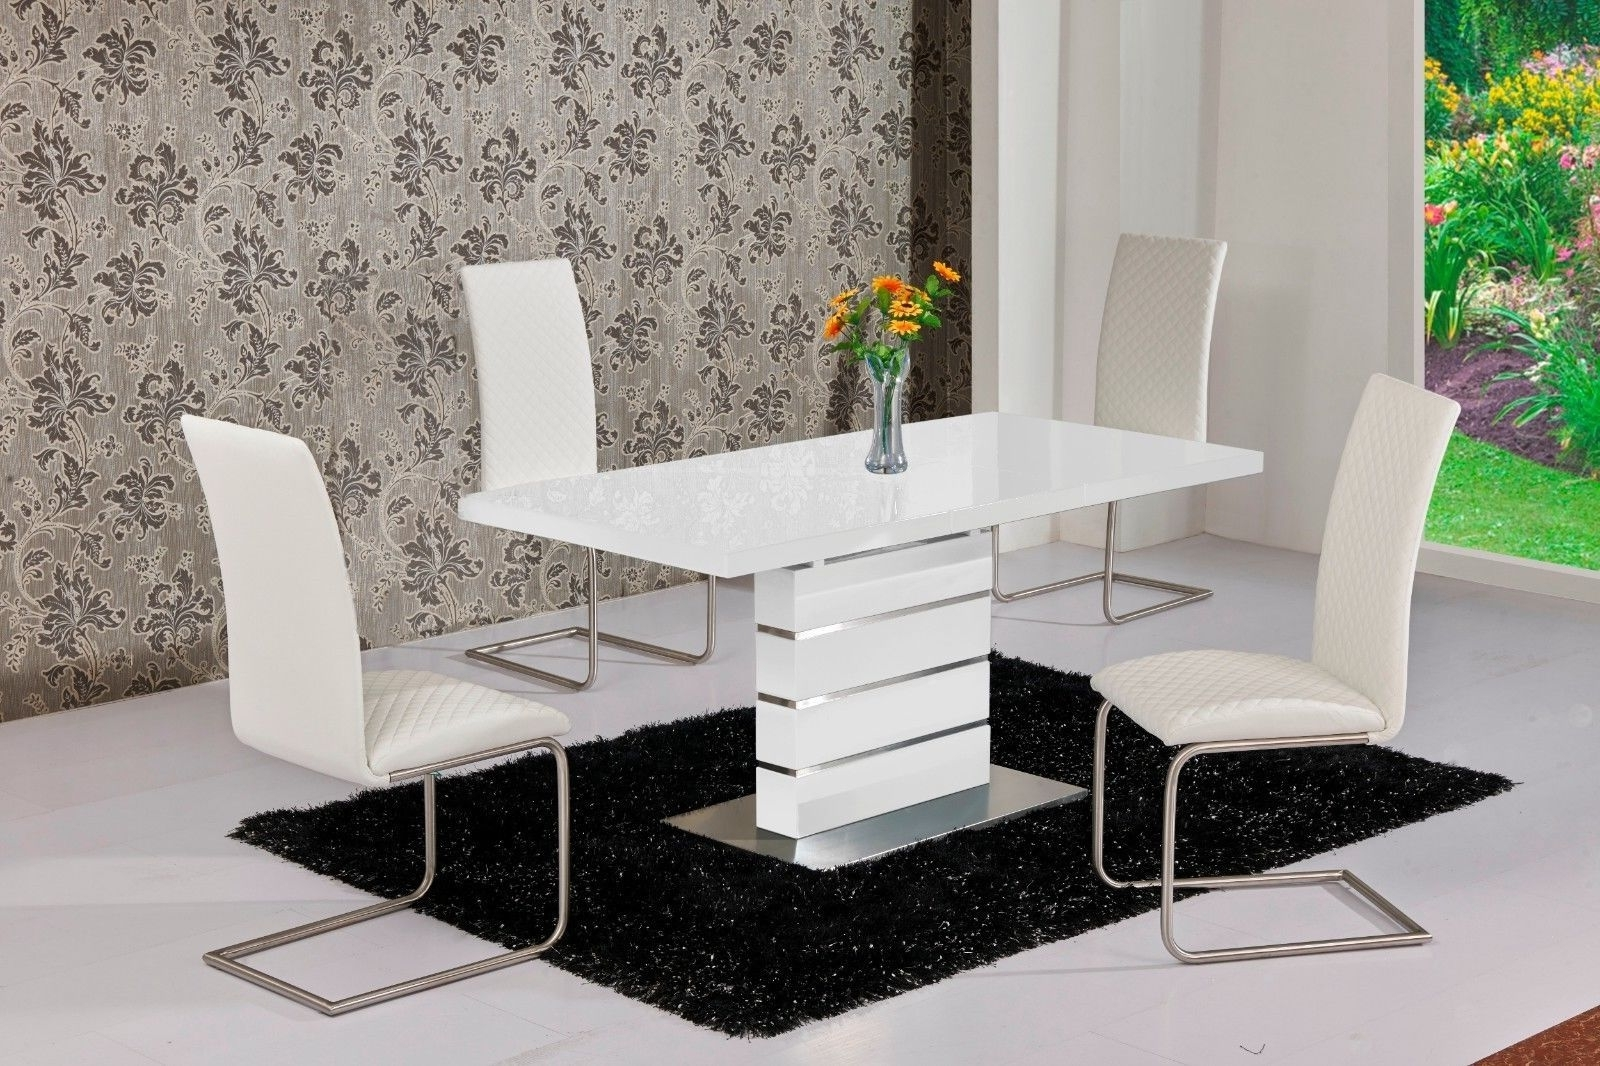 Widely Used White Extending Dining Tables And Chairs Pertaining To Mace High Gloss Extending 120 160 Dining Table & Chair Set – White (View 3 of 25)